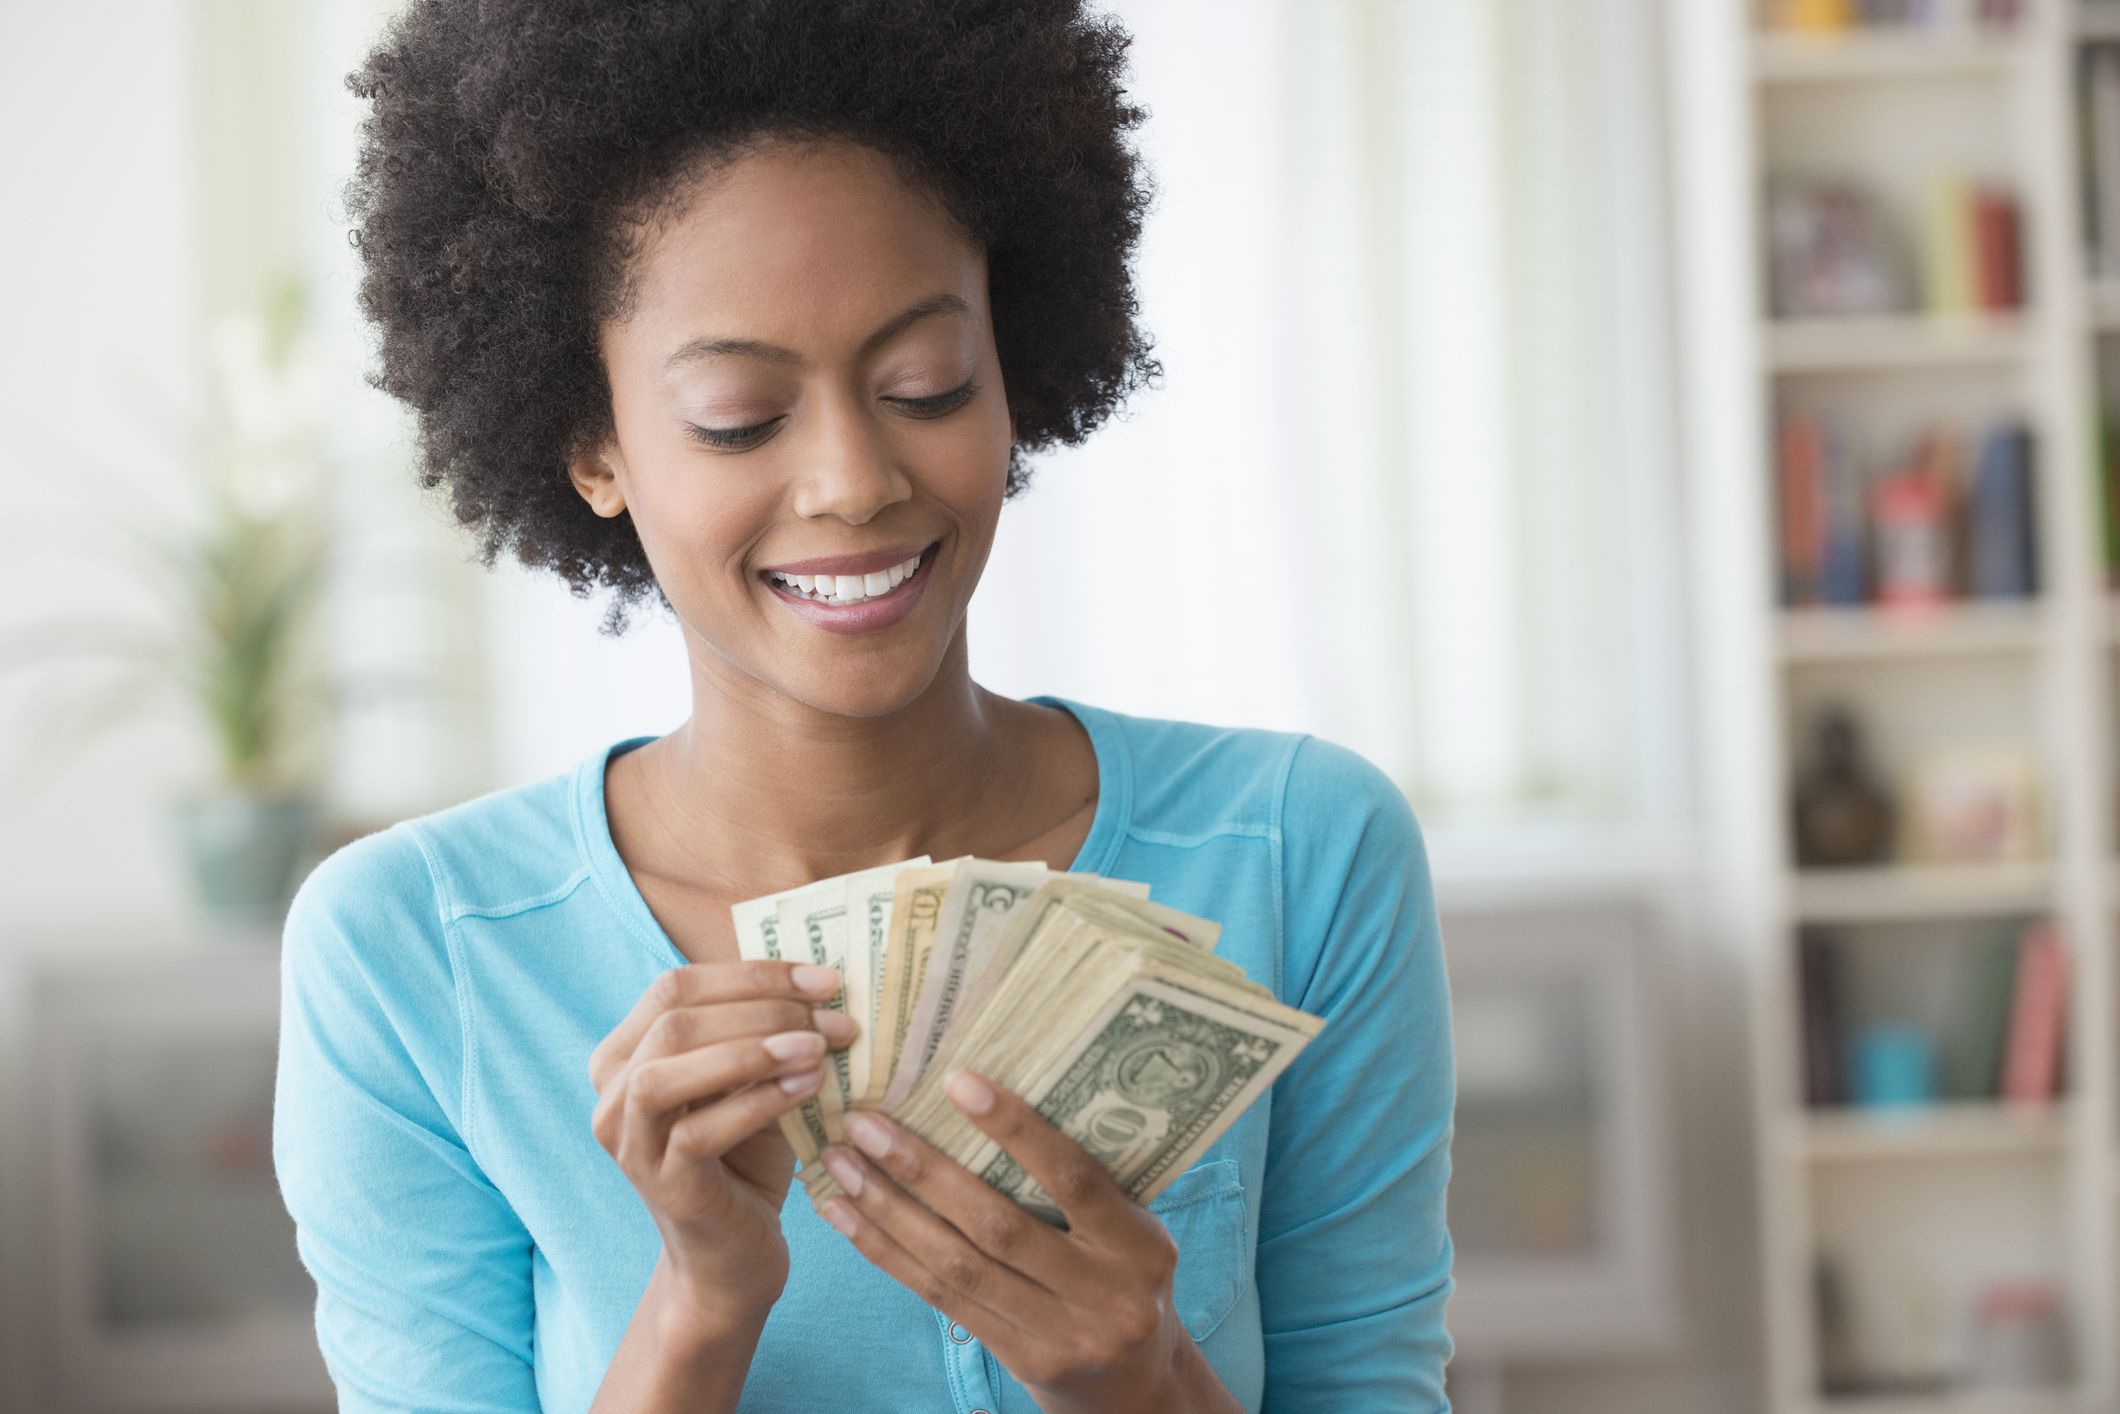 Earn More Money with New Skills